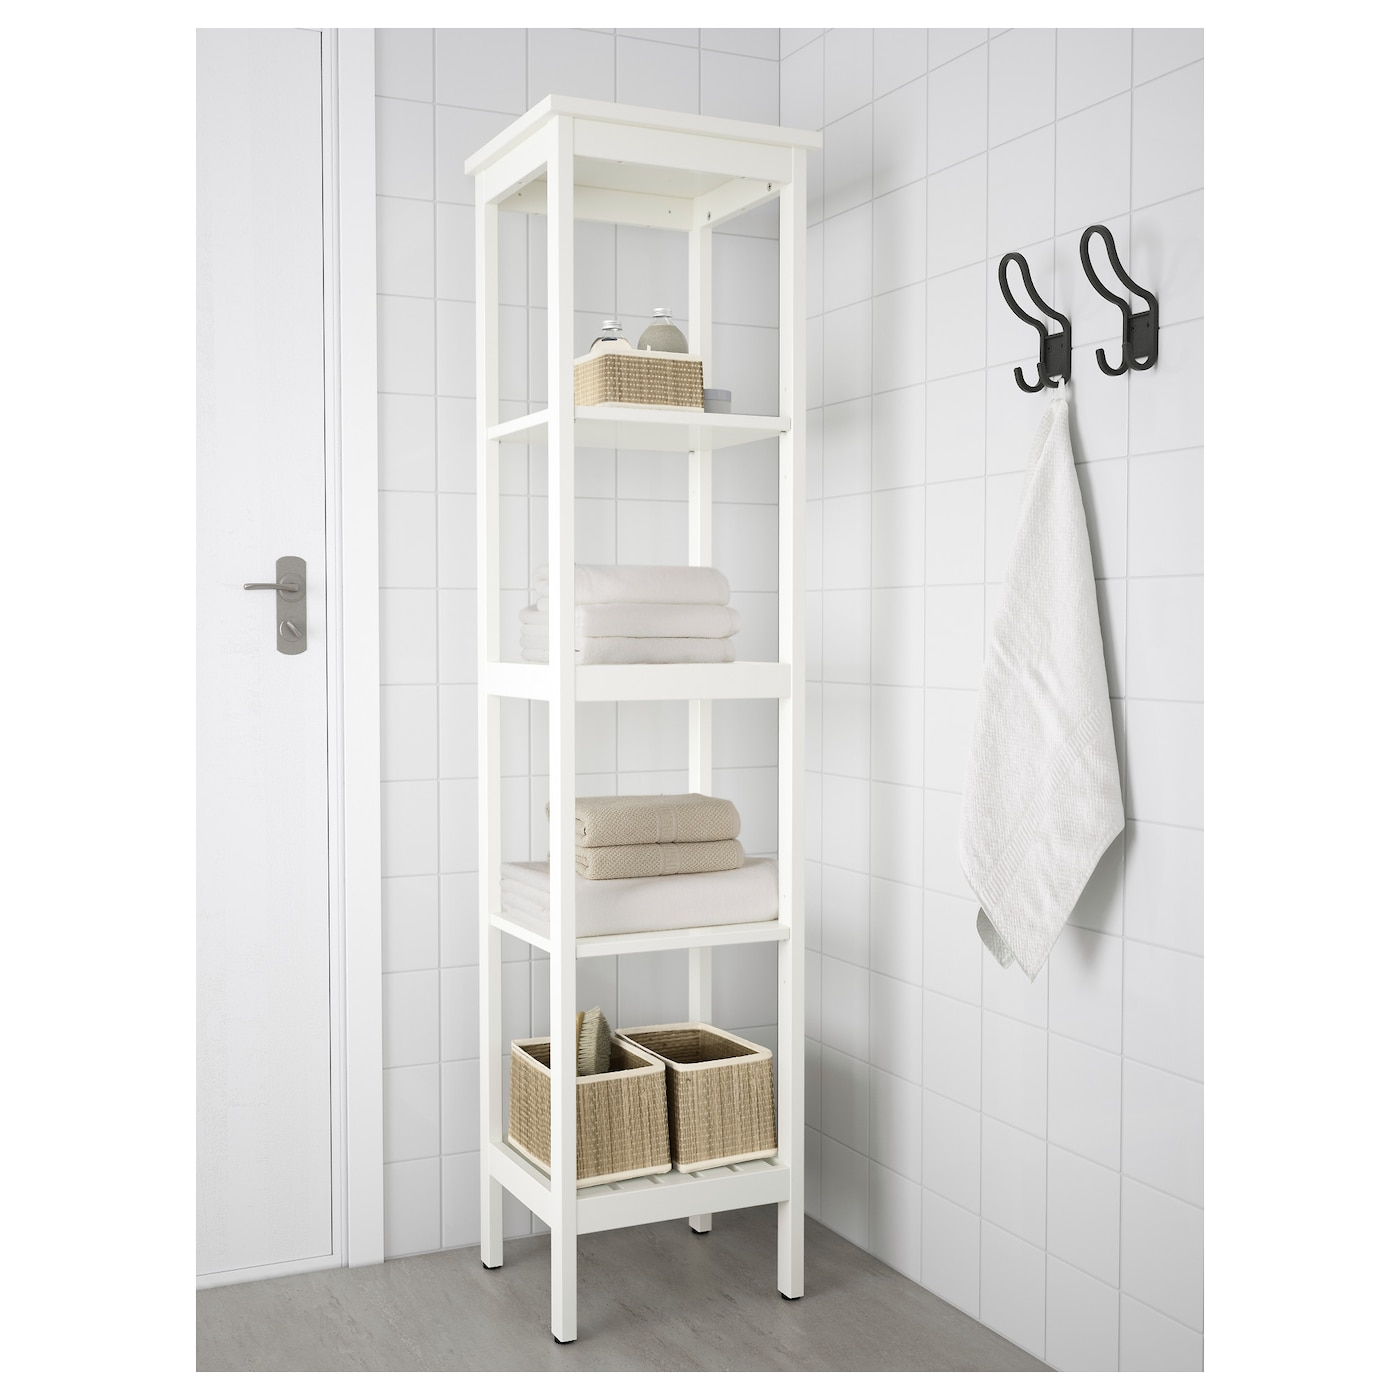 #786A53 HEMNES Shelving Unit White 42x172 Cm IKEA with 2000x2000 px of Brand New Ikea Open Storage Shelves 20002000 pic @ avoidforclosure.info